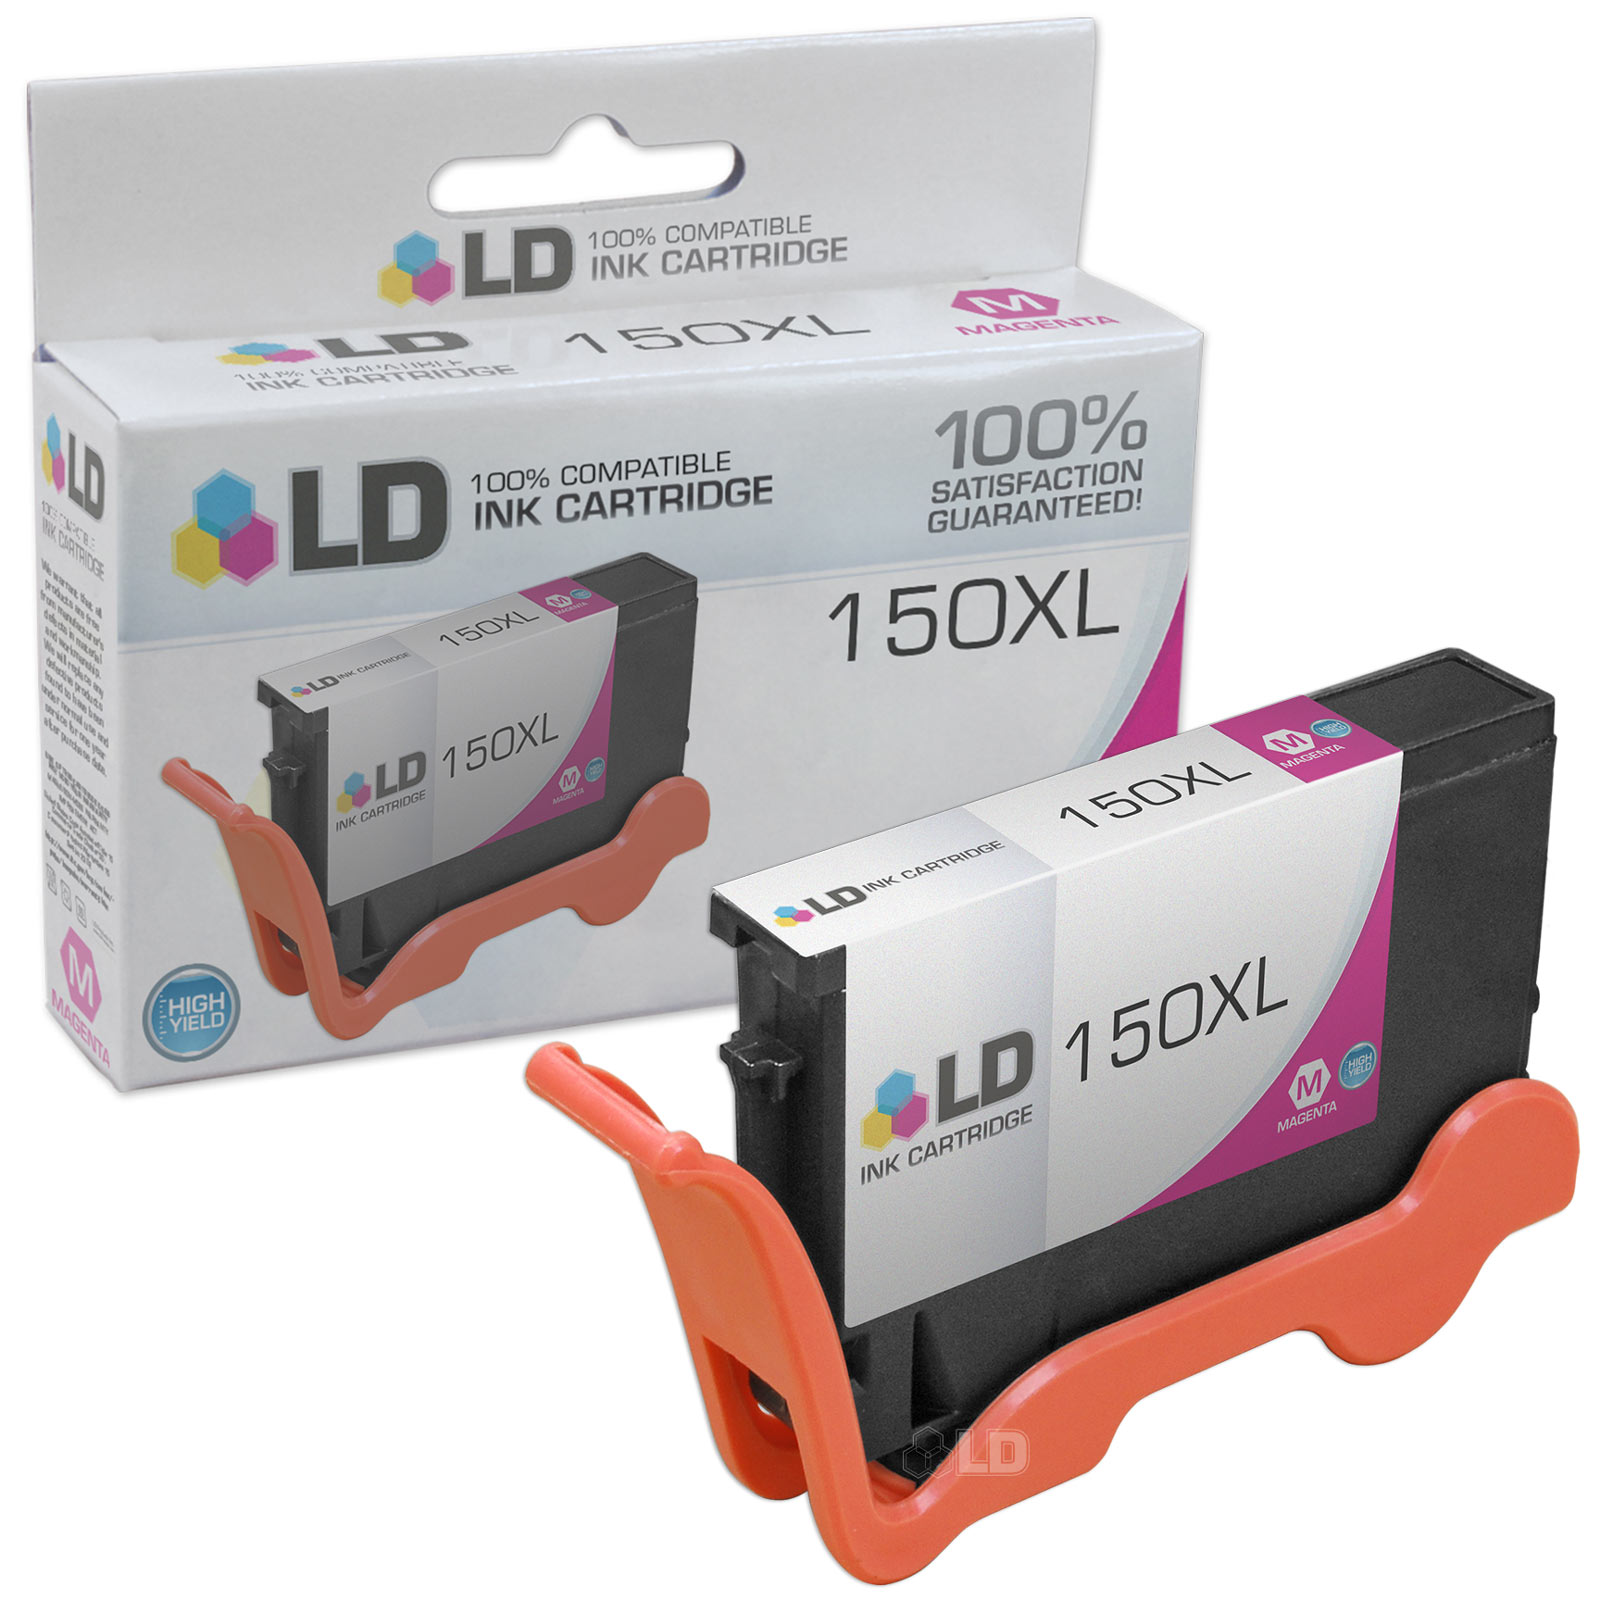 LD Compatible Replacement for Lexmark 14N1616 150XL / 150 High Yield Magenta Inkjet Cartridge for use in Lexmark